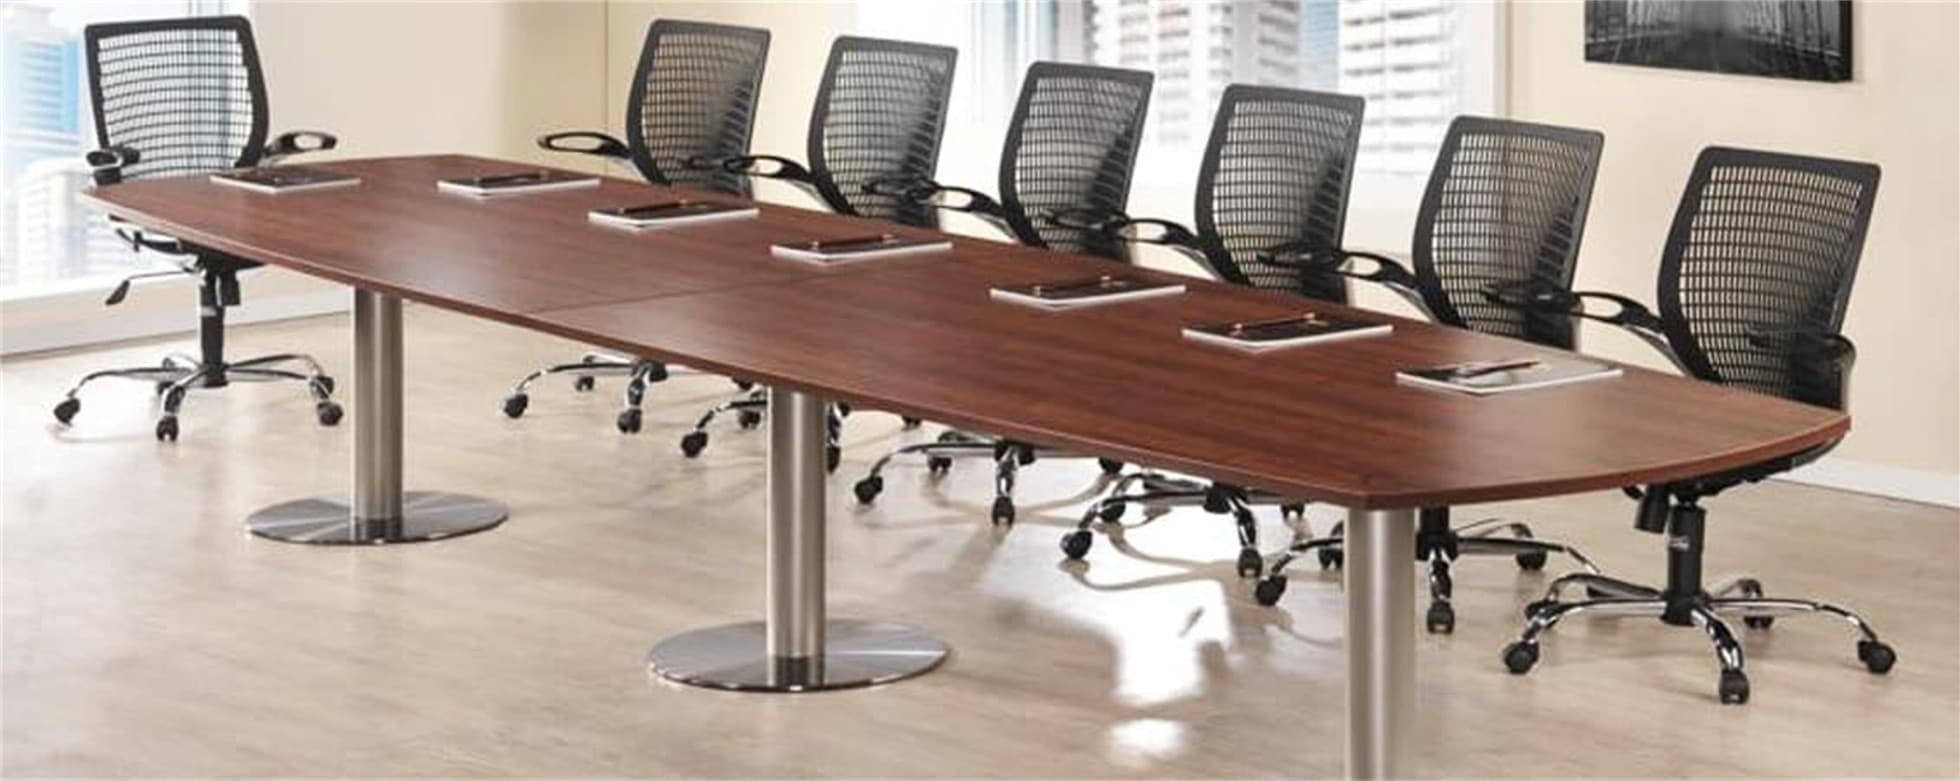 office chair penang kitchen covers target furniture manufacturer malaysia chairs system